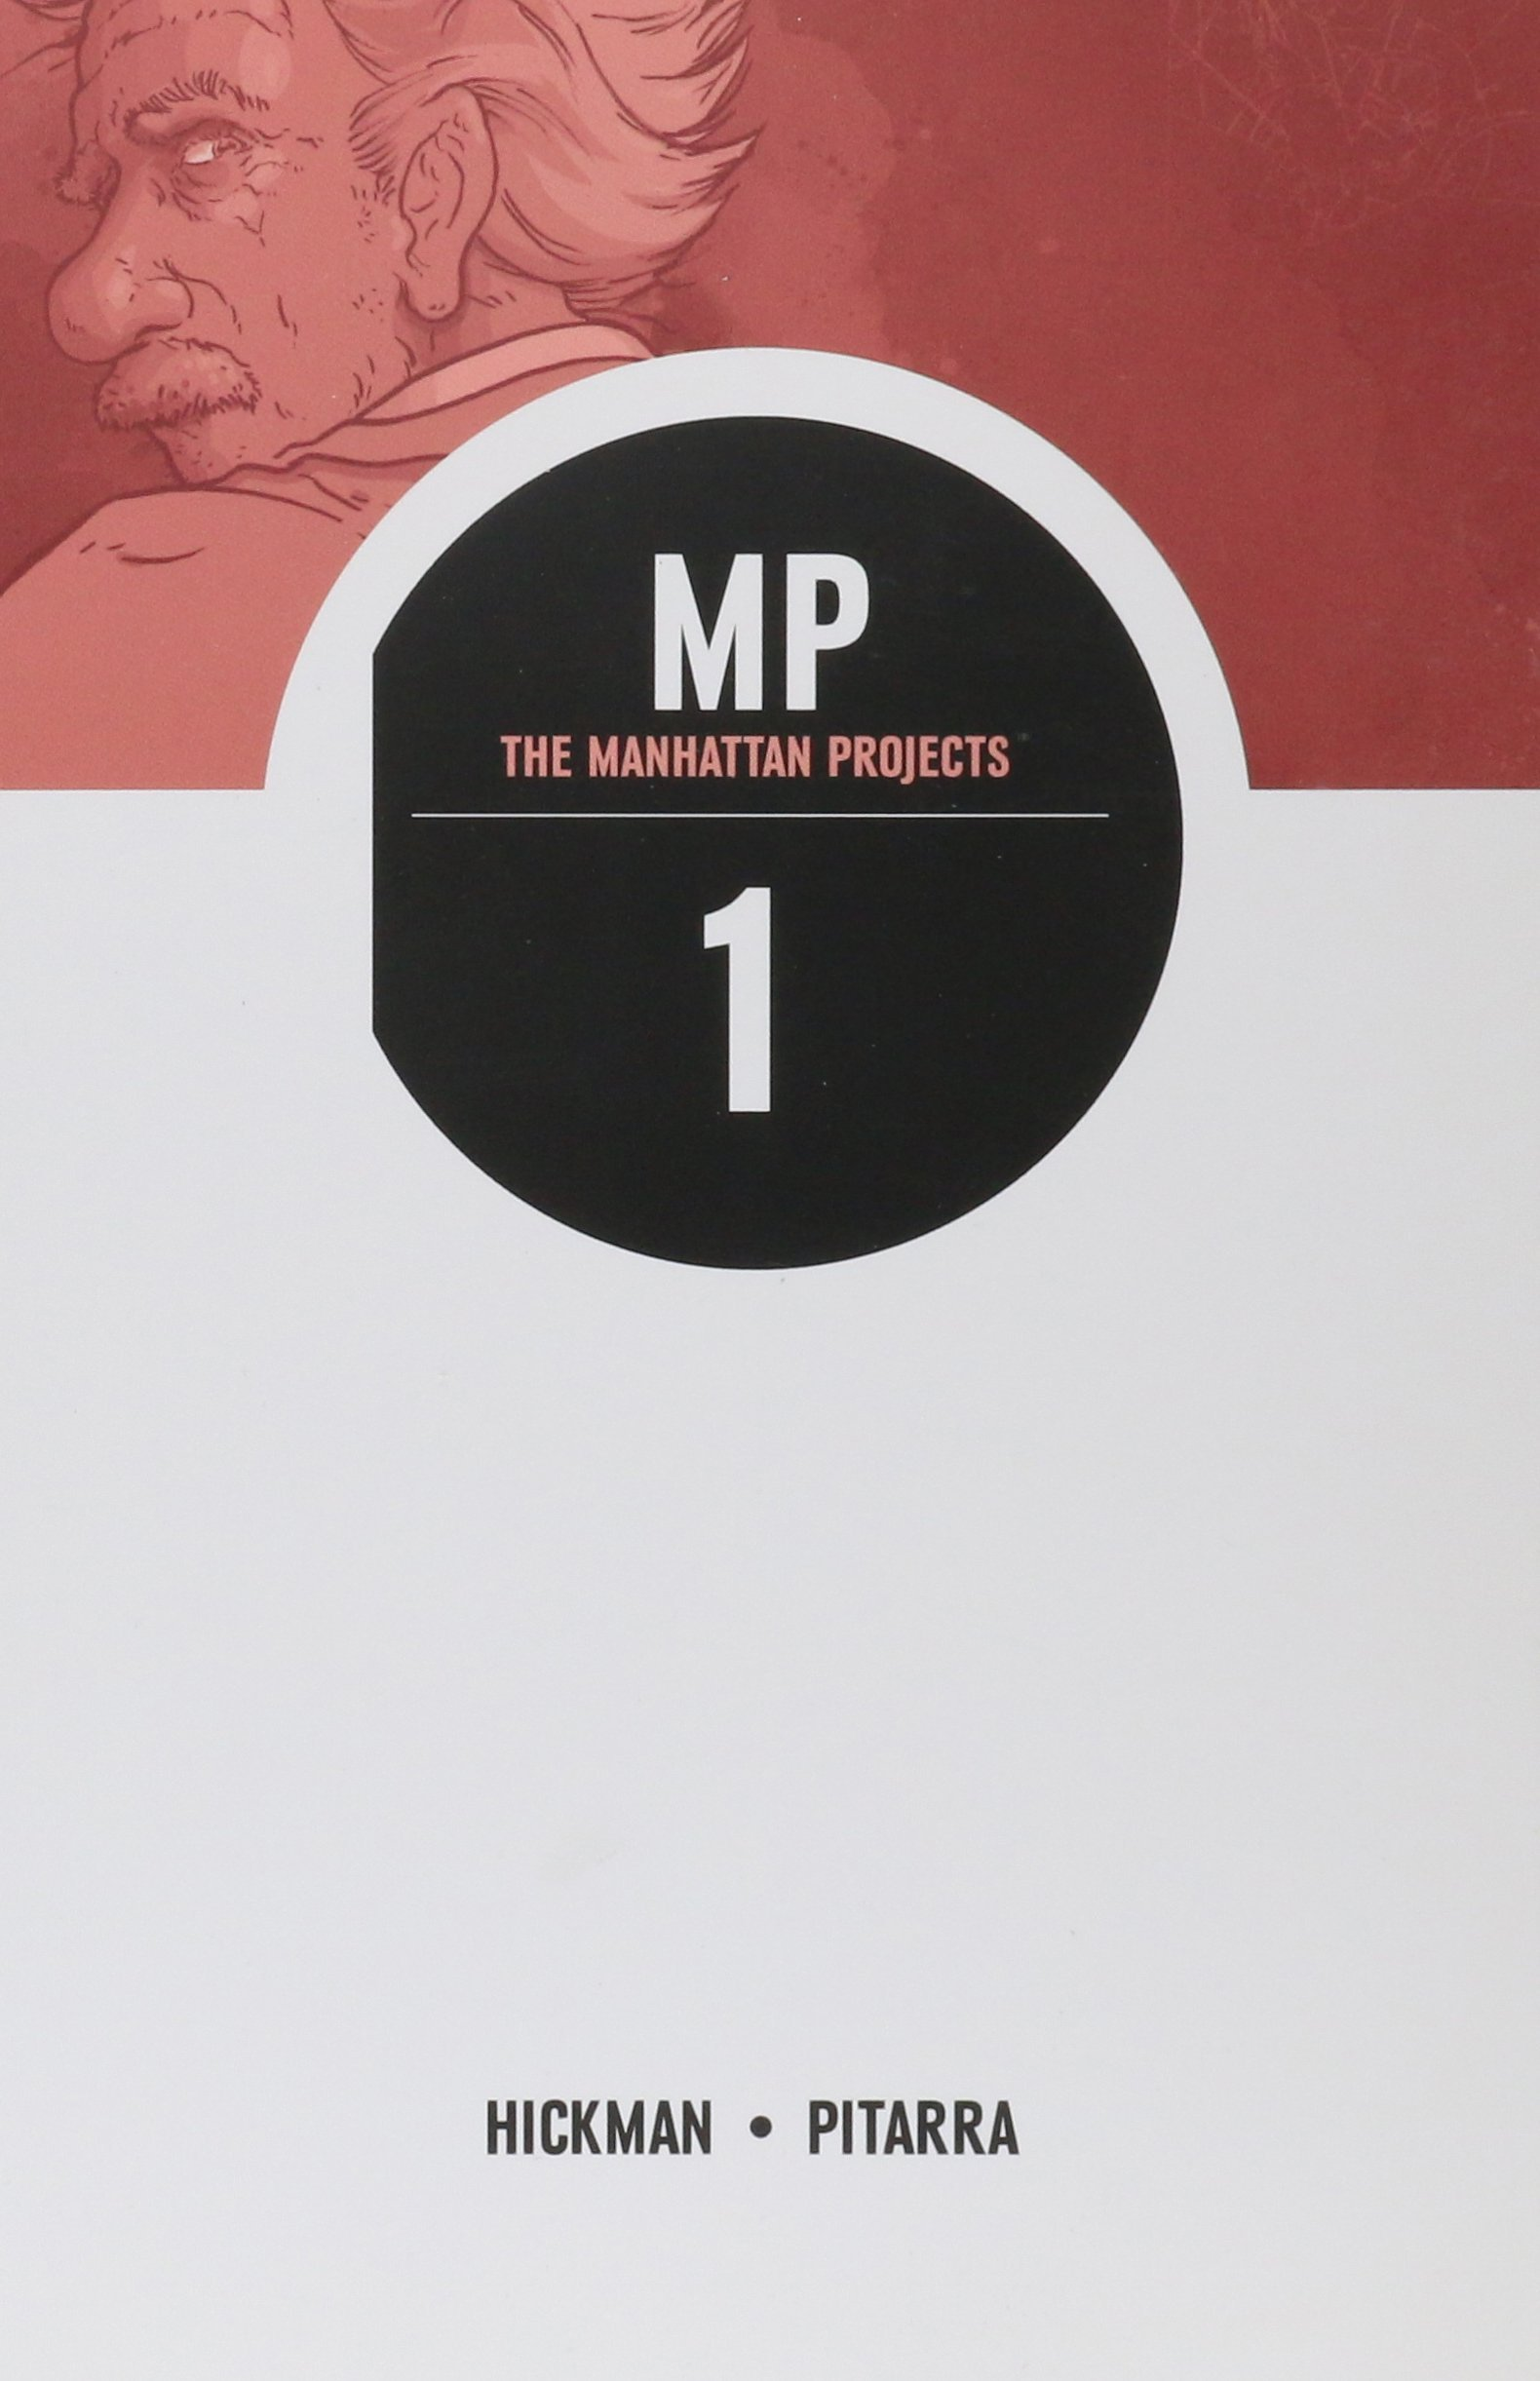 The Manhattan Projects, Volume 1: Science Bad ISBN-13 9781607066088